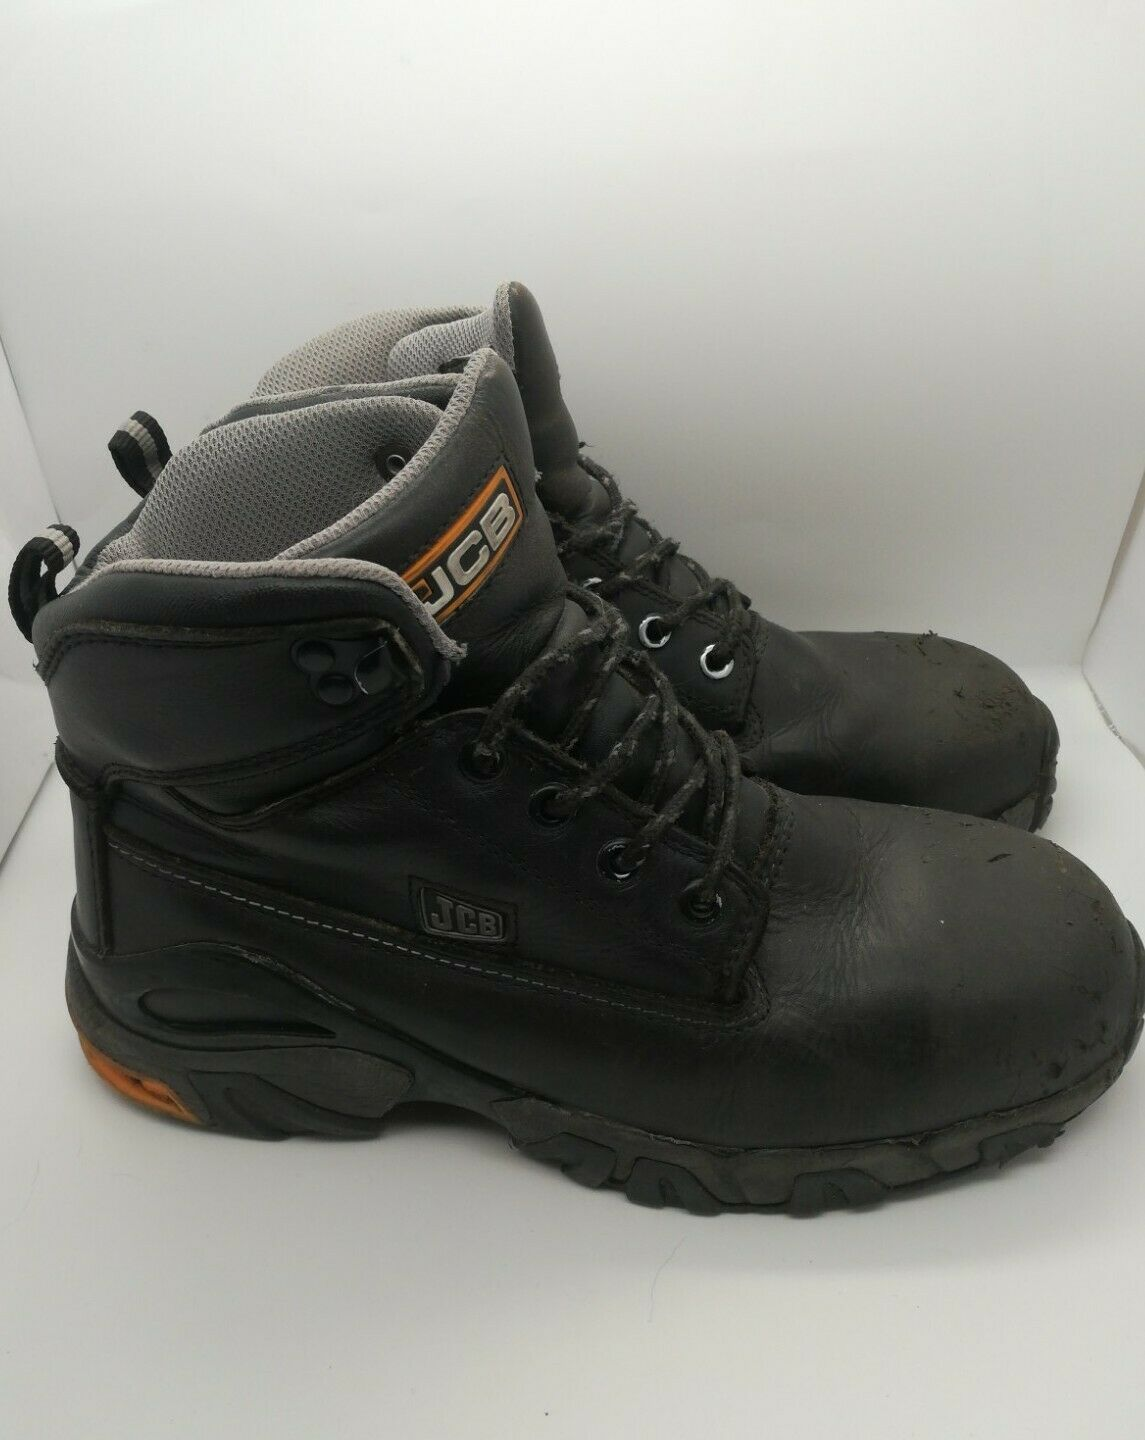 JCB 4x4 JF0040 MENS BLACK LEATHER SAFETY WORK BOOTS STEEL MIDSOLE & TOE CAP